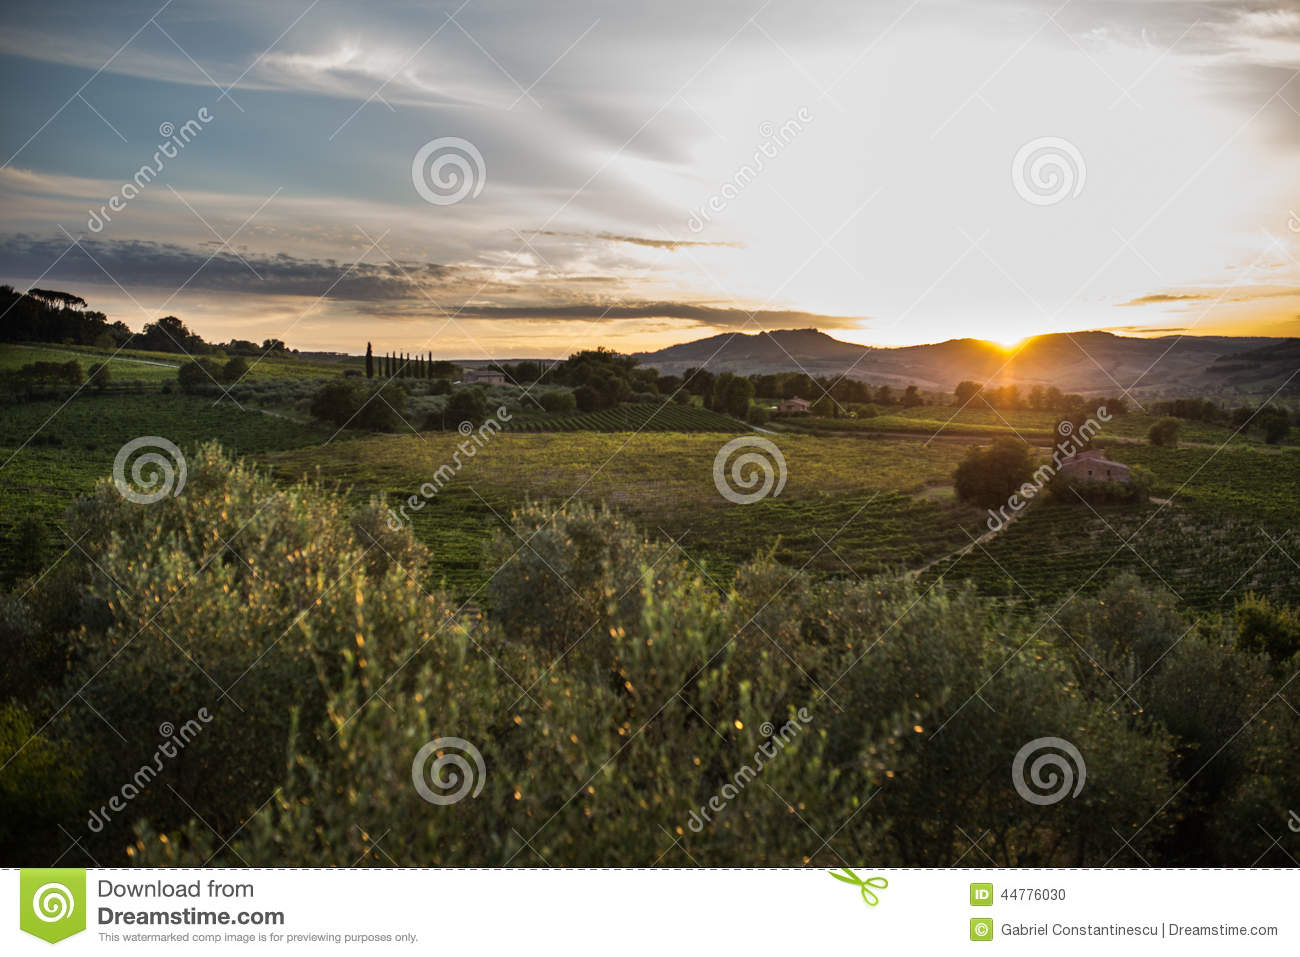 Olive orchard in sunset